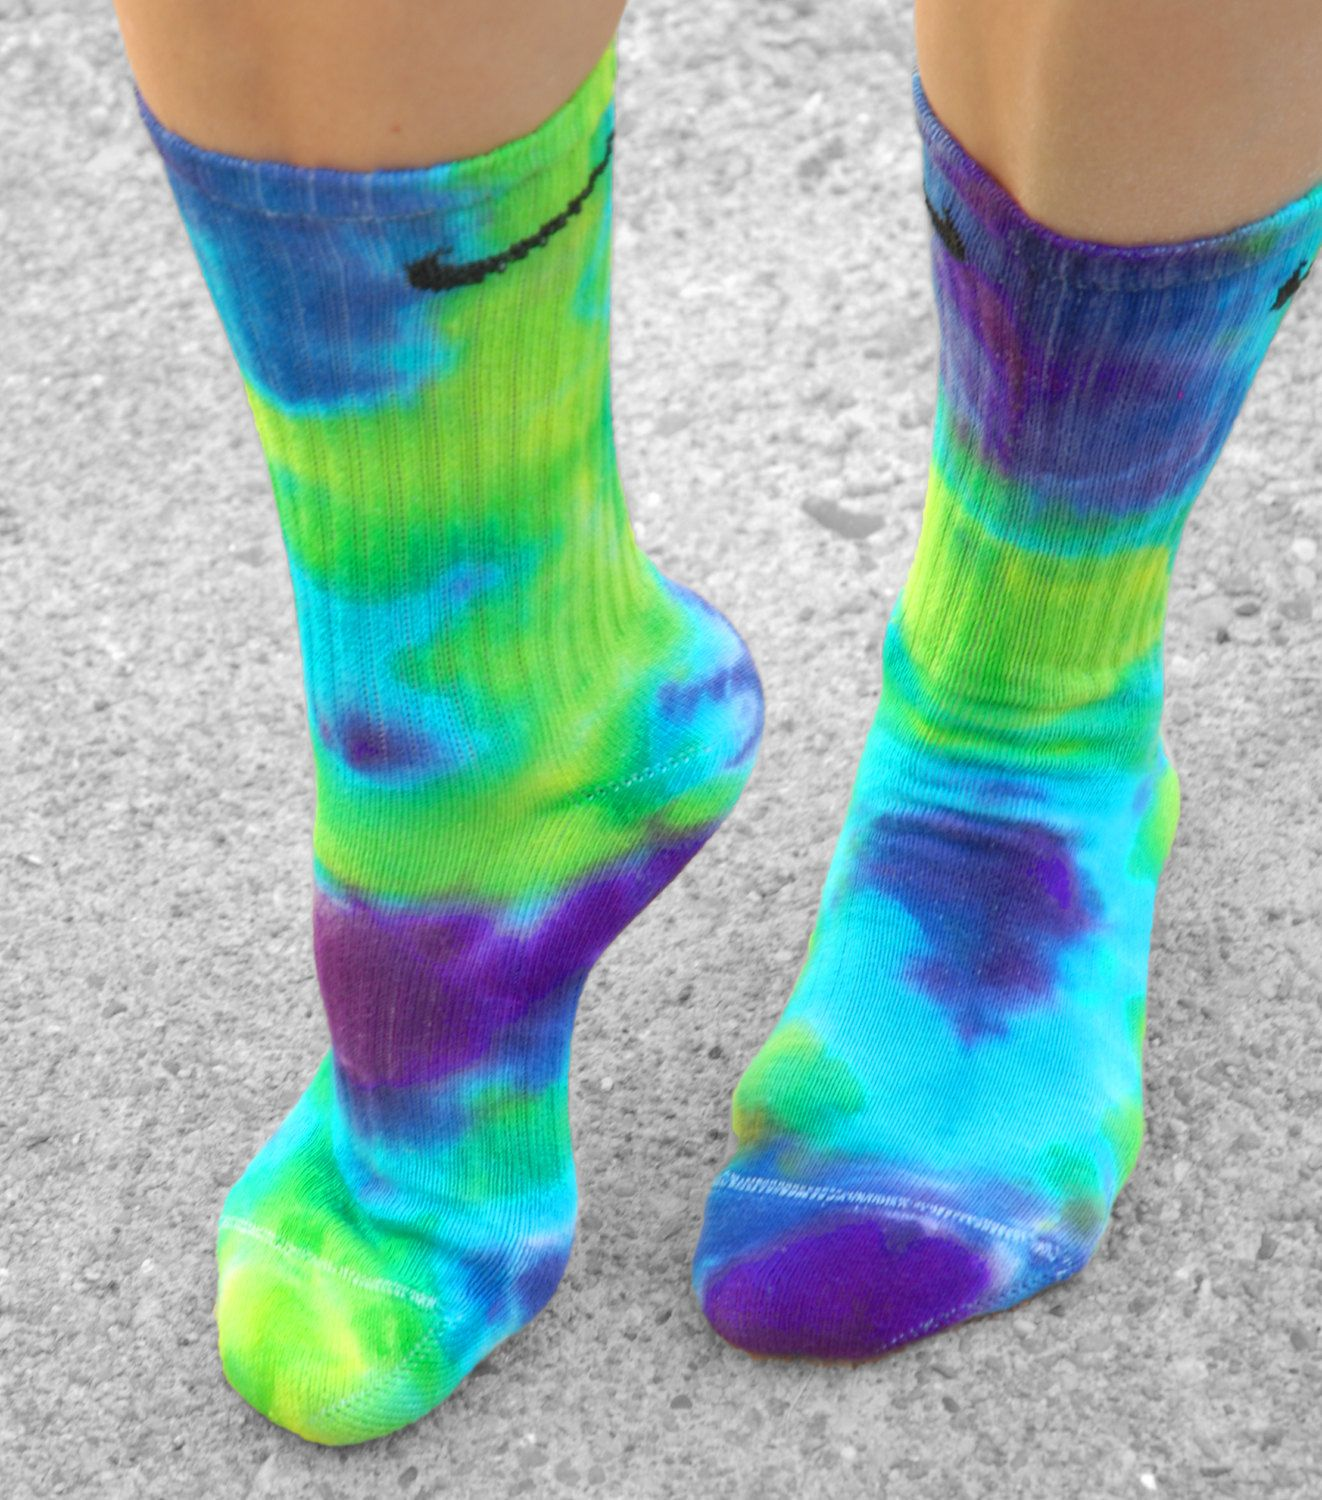 CUSTOM Tie Dye Nike Crew Socks Hand Dyed fashion accessories